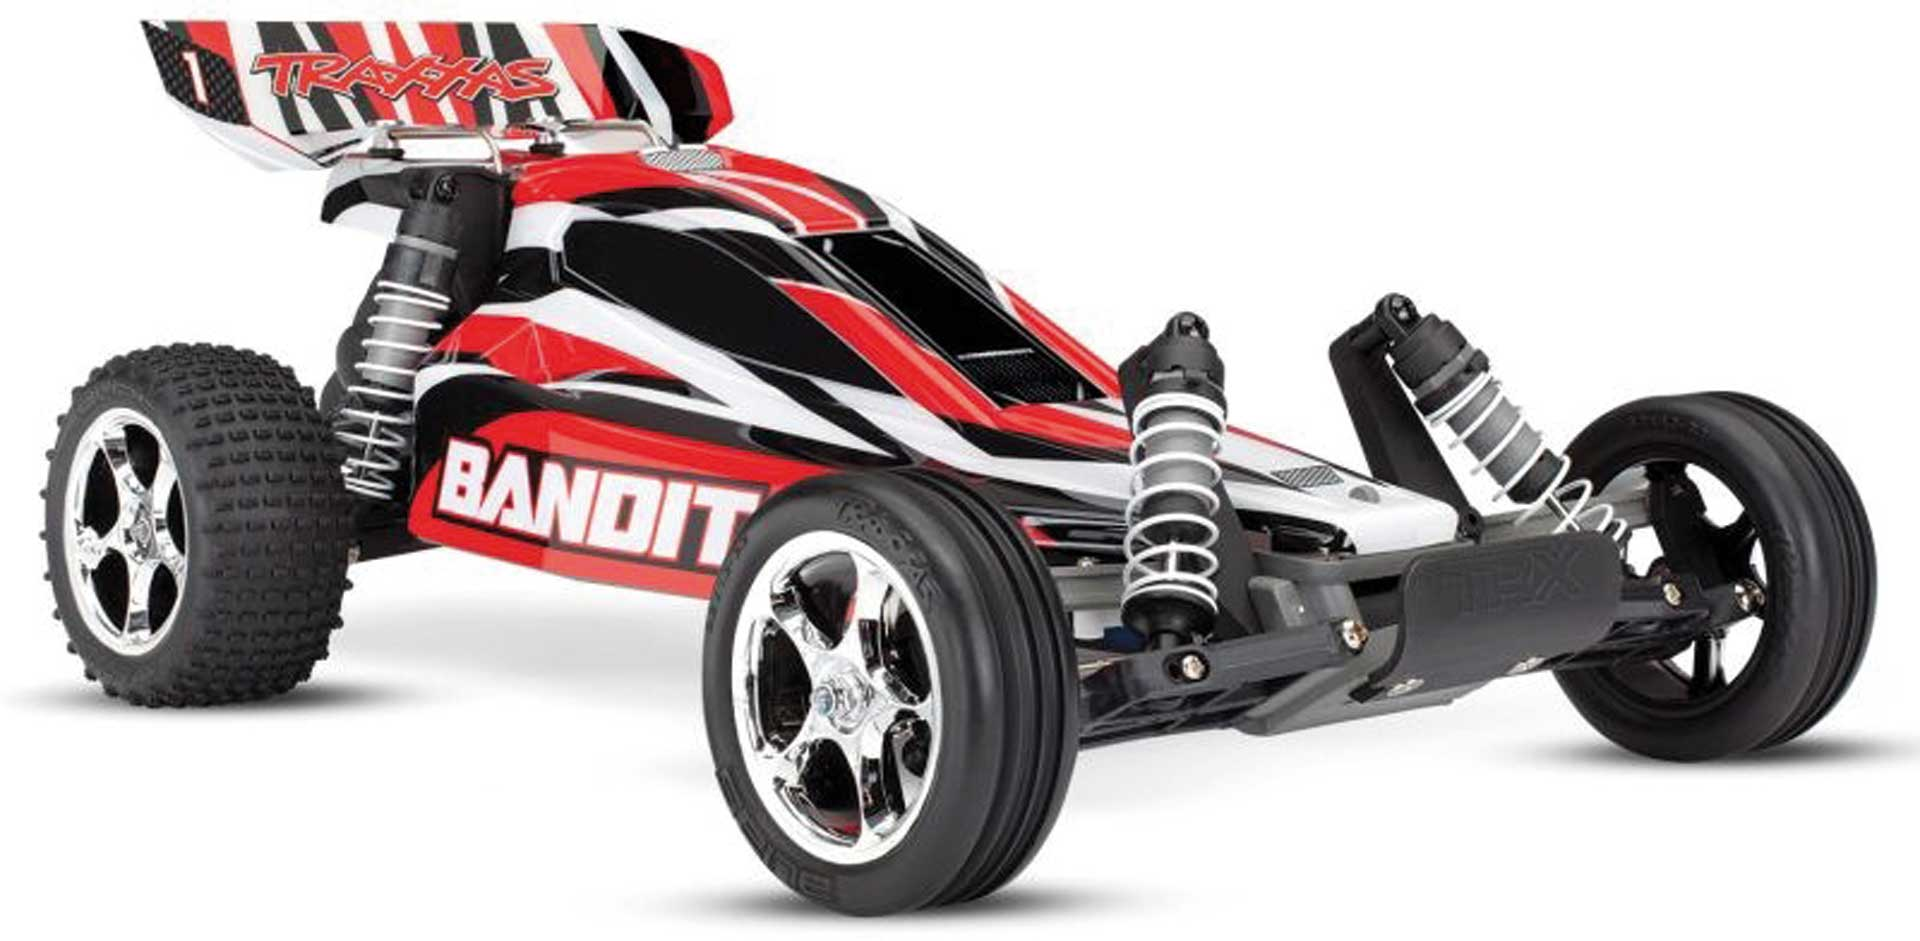 Traxxas BANDIT ROT-X BUGGY RTR MIT AKKU/+12V LADER 1/10 2WD BUGGY BRUSHED